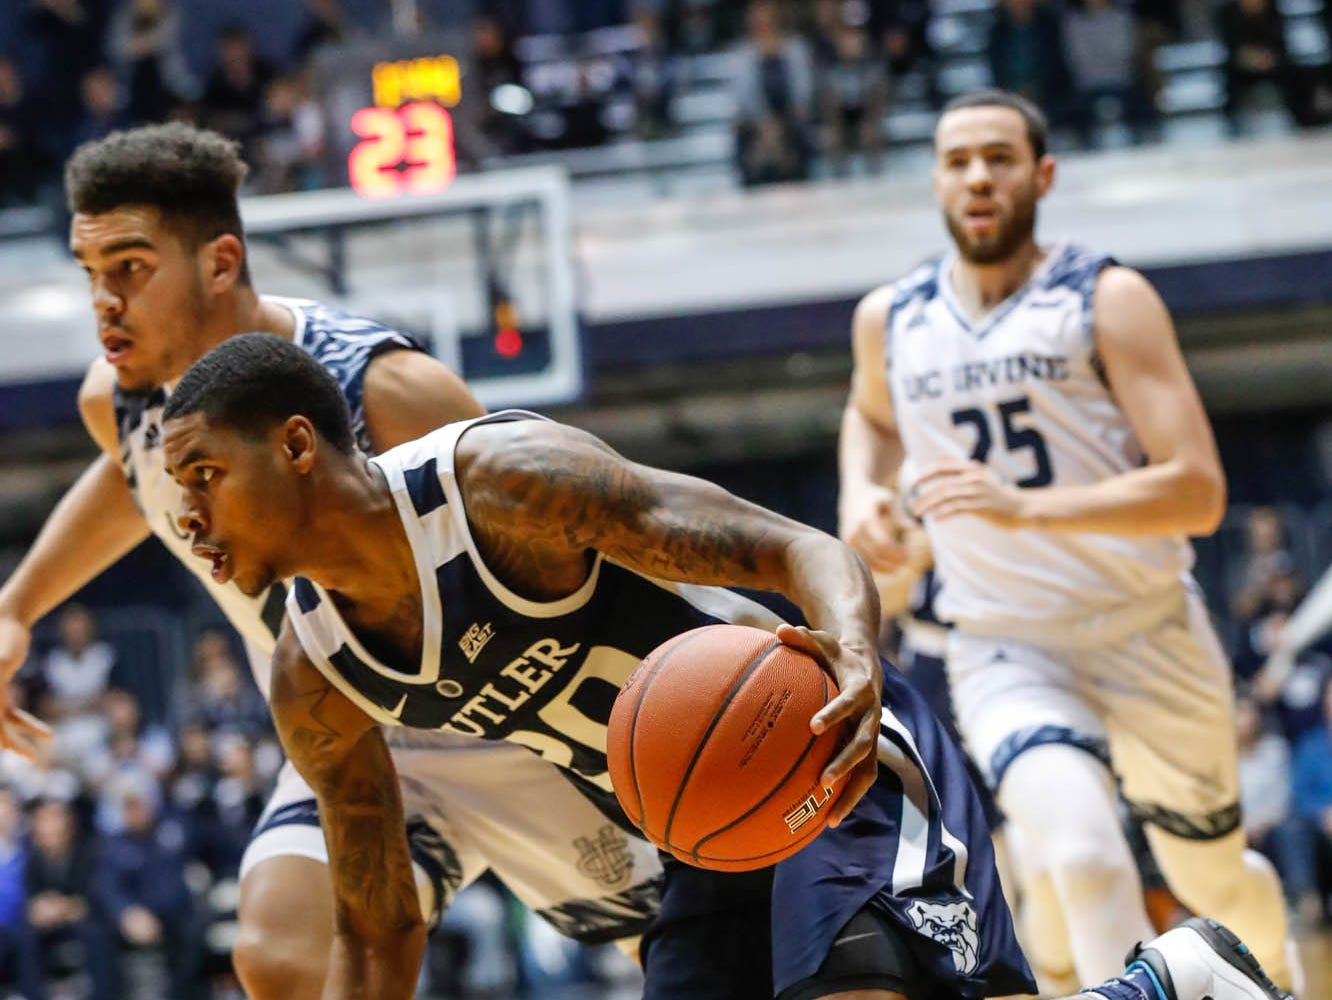 Butler University's guard/forward Henry Baddley (20) drives past opposing players during a game between Butler University and UC Irvine, at Hinkle Fieldhouse on Friday, Dec. 21, 2018.